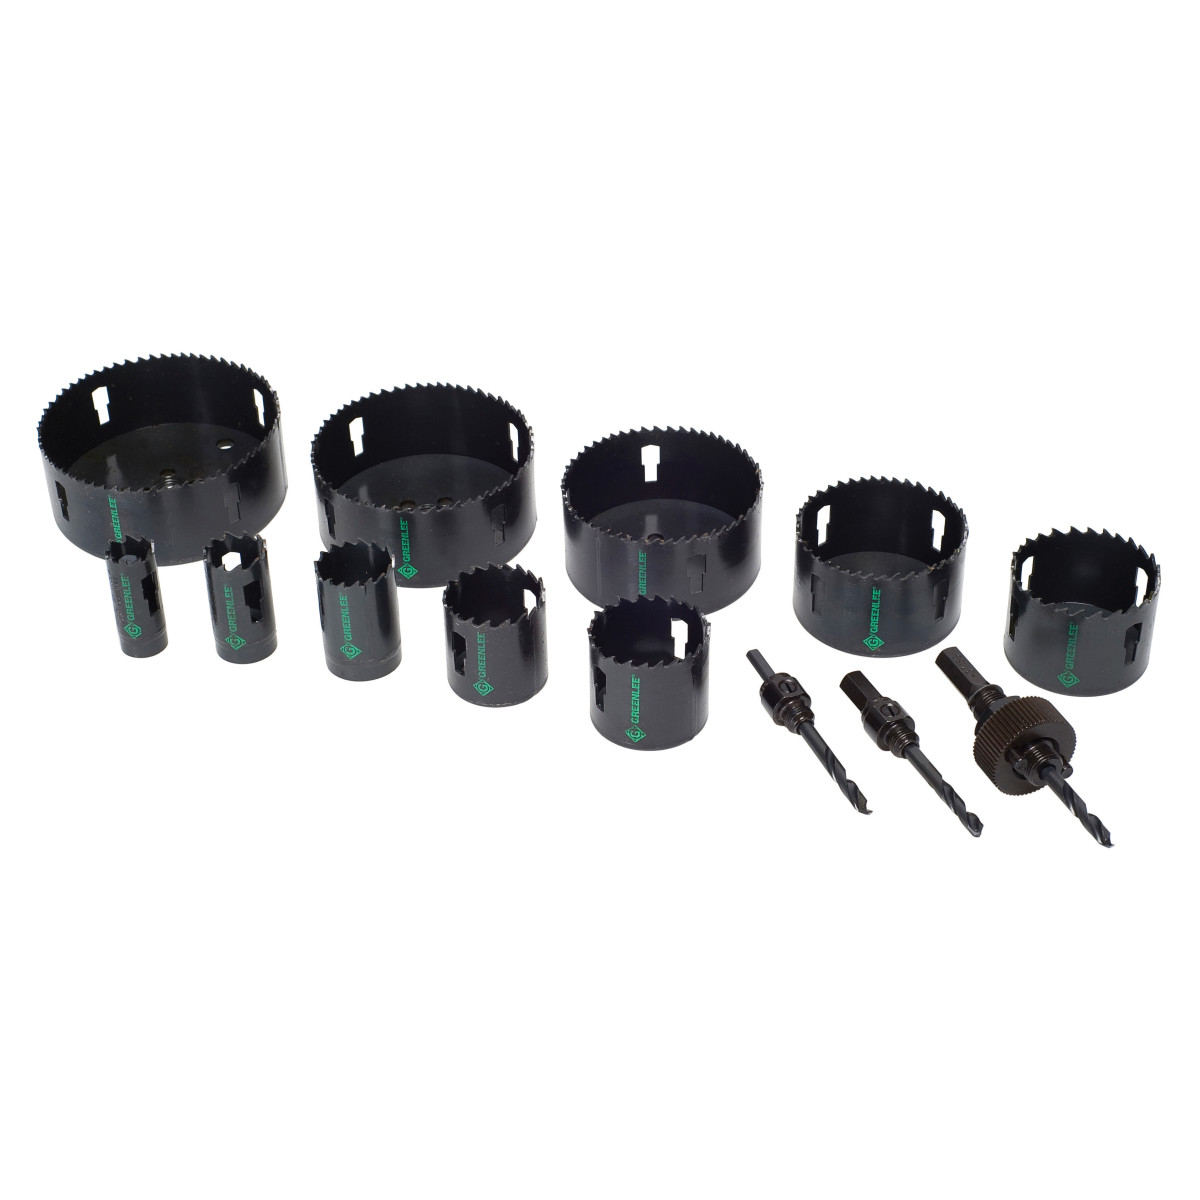 Greenlee 835 Hole Saw Kit, 13 Pieces, For Use With 1/2 to 4 in Conduit, Bi-Metal